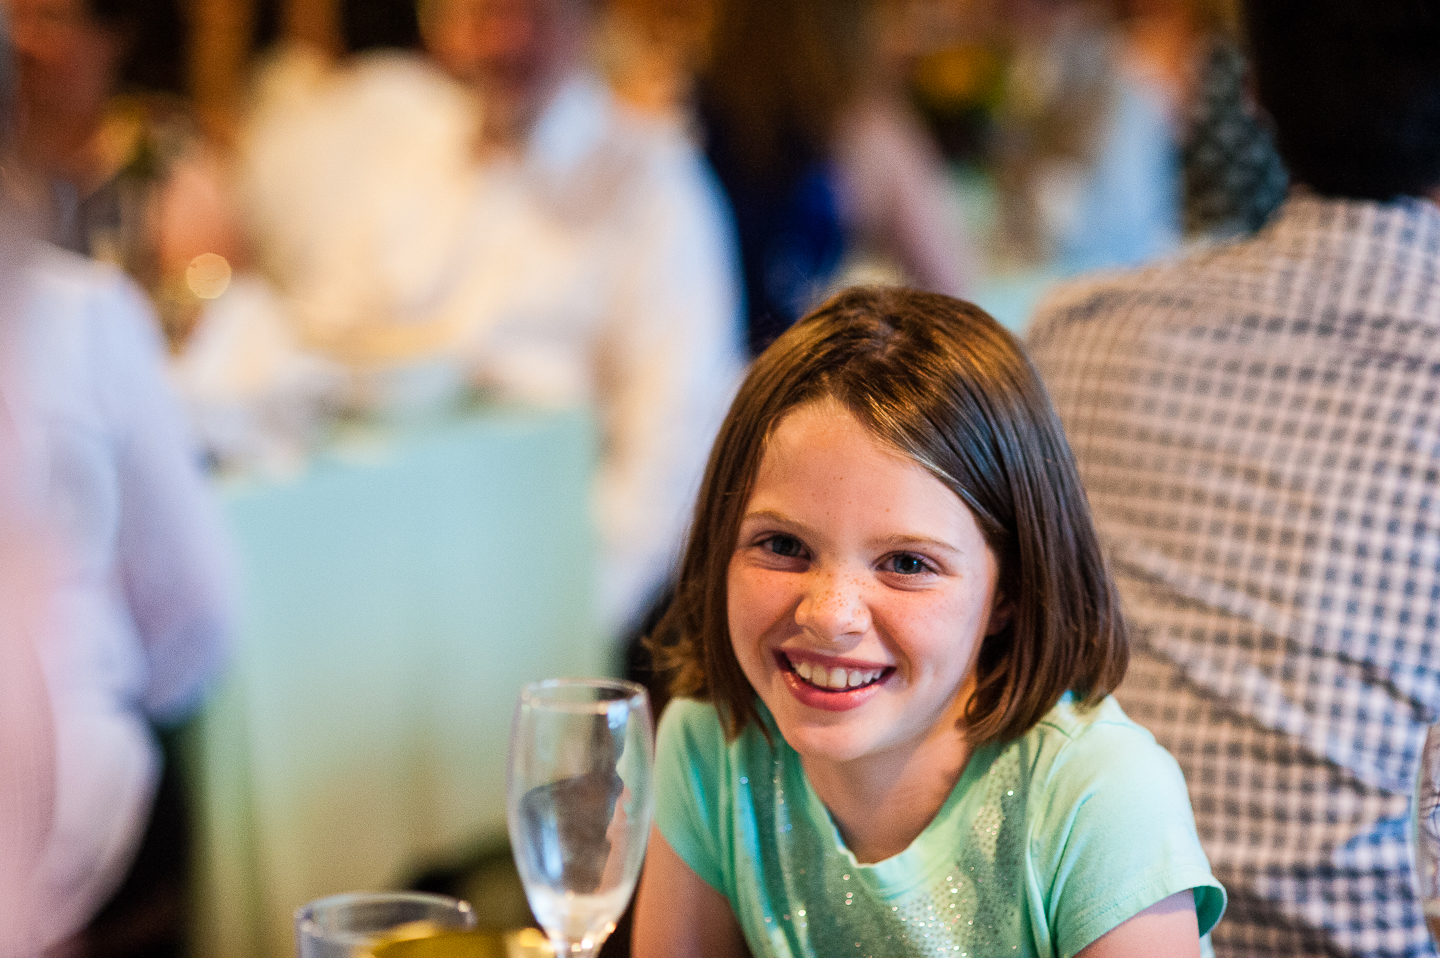 adorable little wedding guest smiling for camera